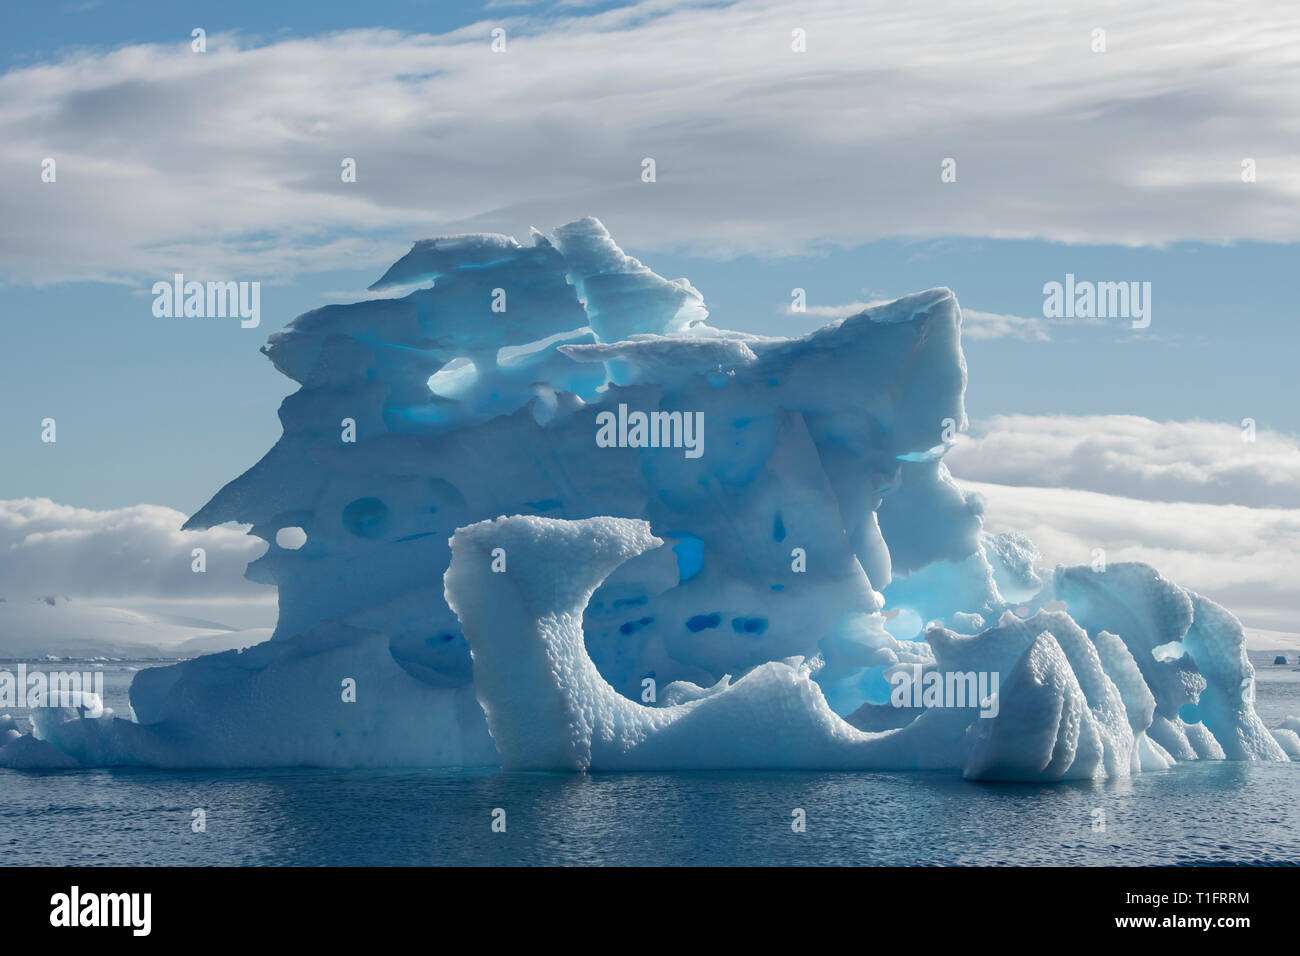 Antarctica. Cuverville Island located within the Errera Channel between Ronge Island and the Arctowski Peninsula. Large blue iceberg. Stock Photo